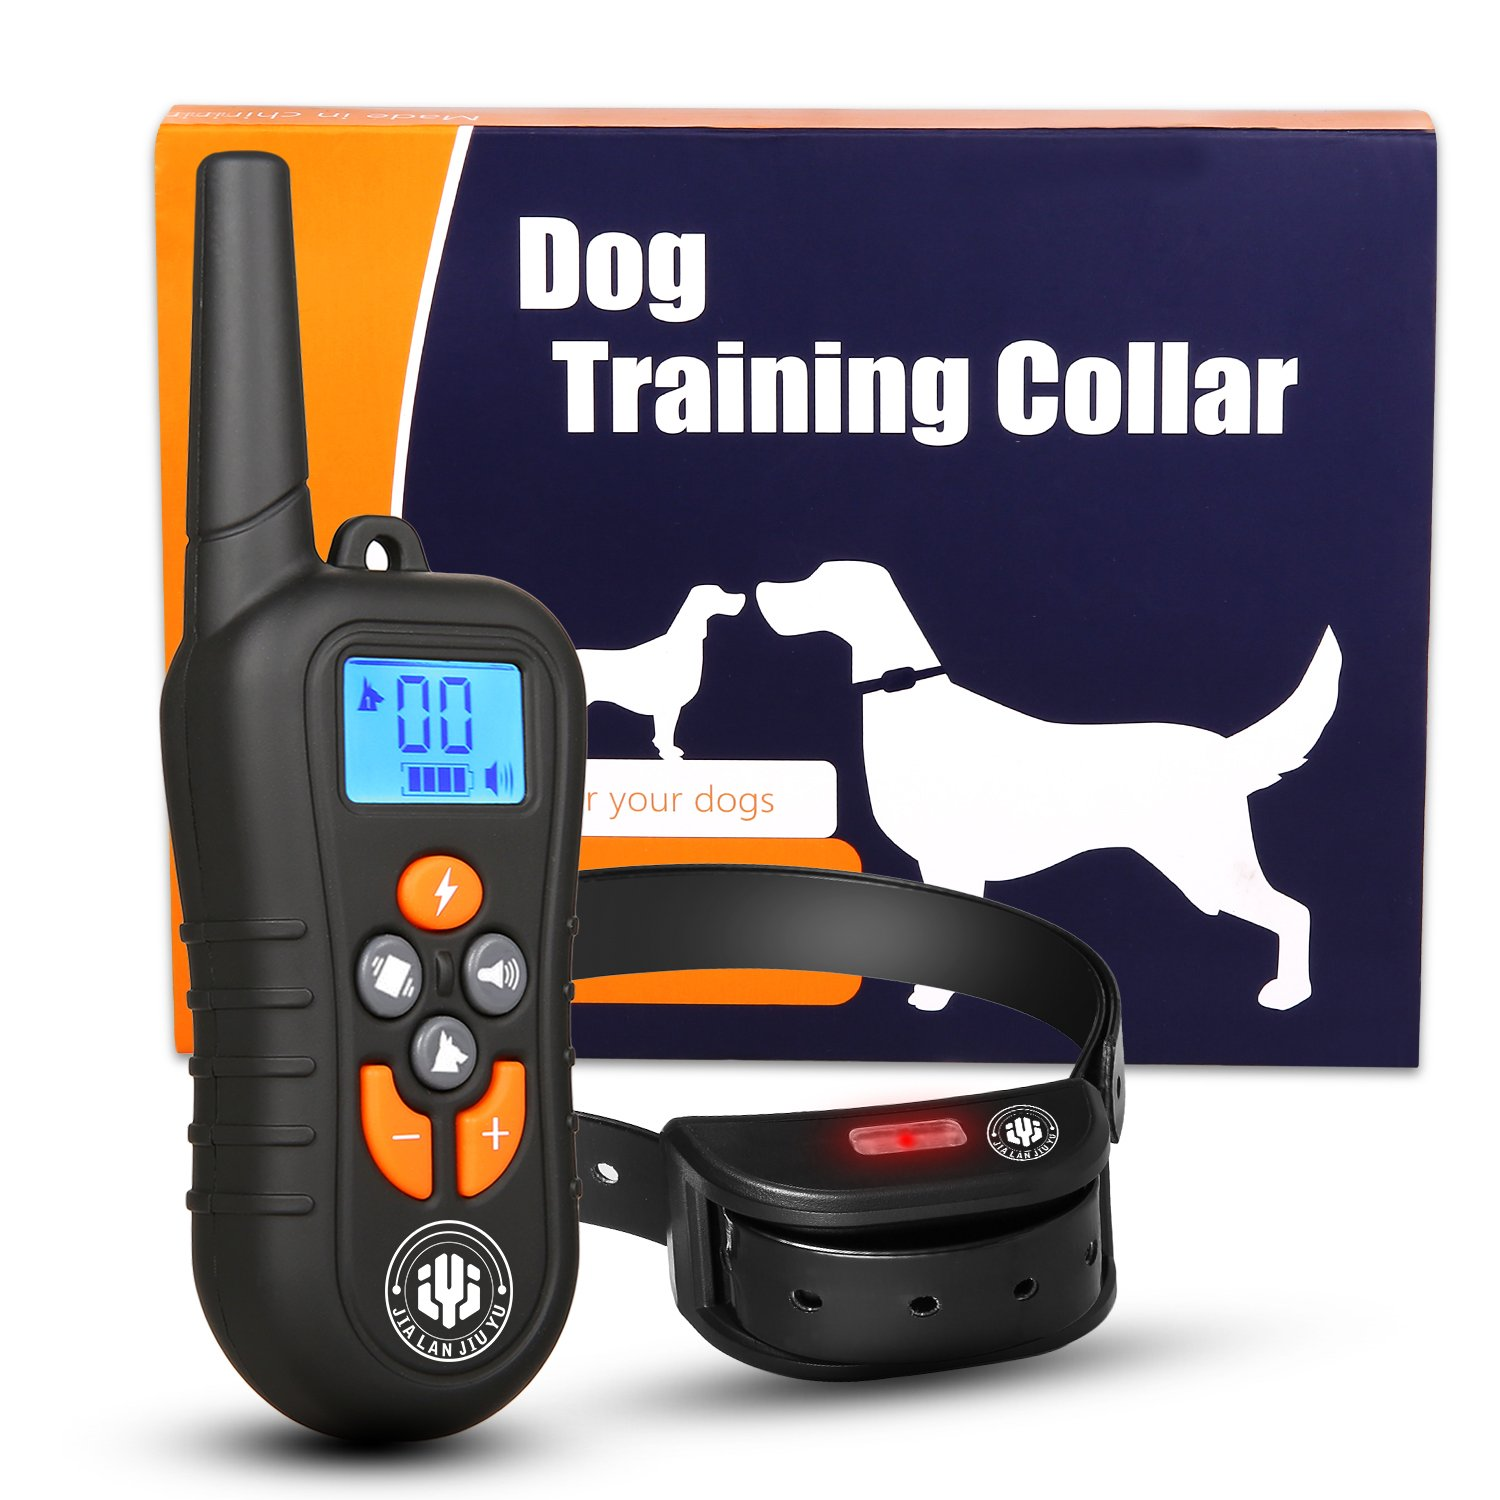 Dog Training Collar,Shock Bark Training Collar for dogs,NO Hurt and Rechargeable and IP7 Waterproof with 1800FT Remote Beep/vibration/Shock Electronic Collar Modes for Small Medium Large Dogs